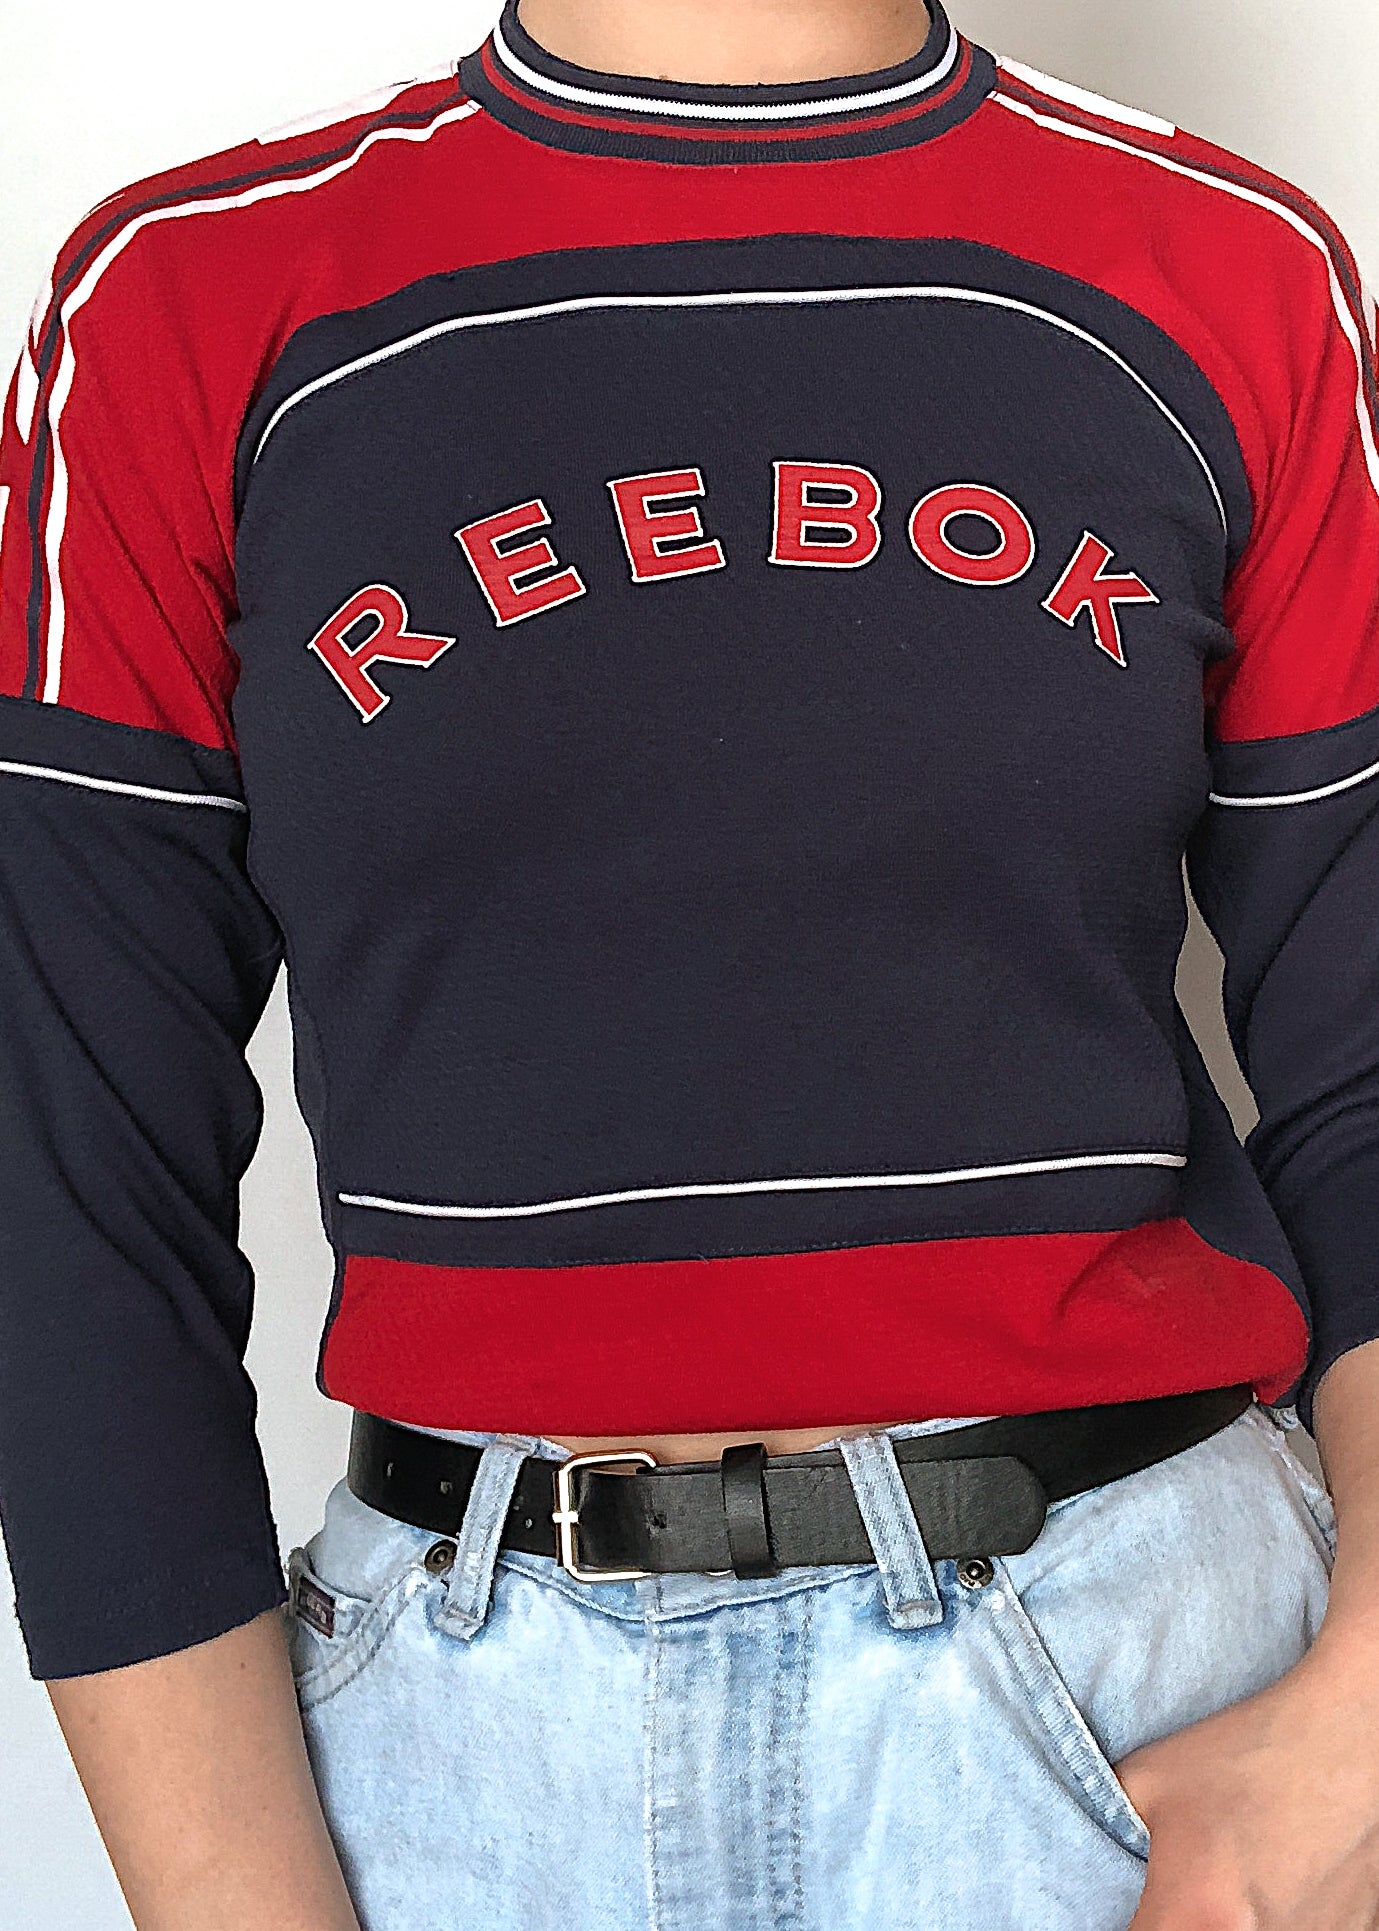 Reebok Athletic Top